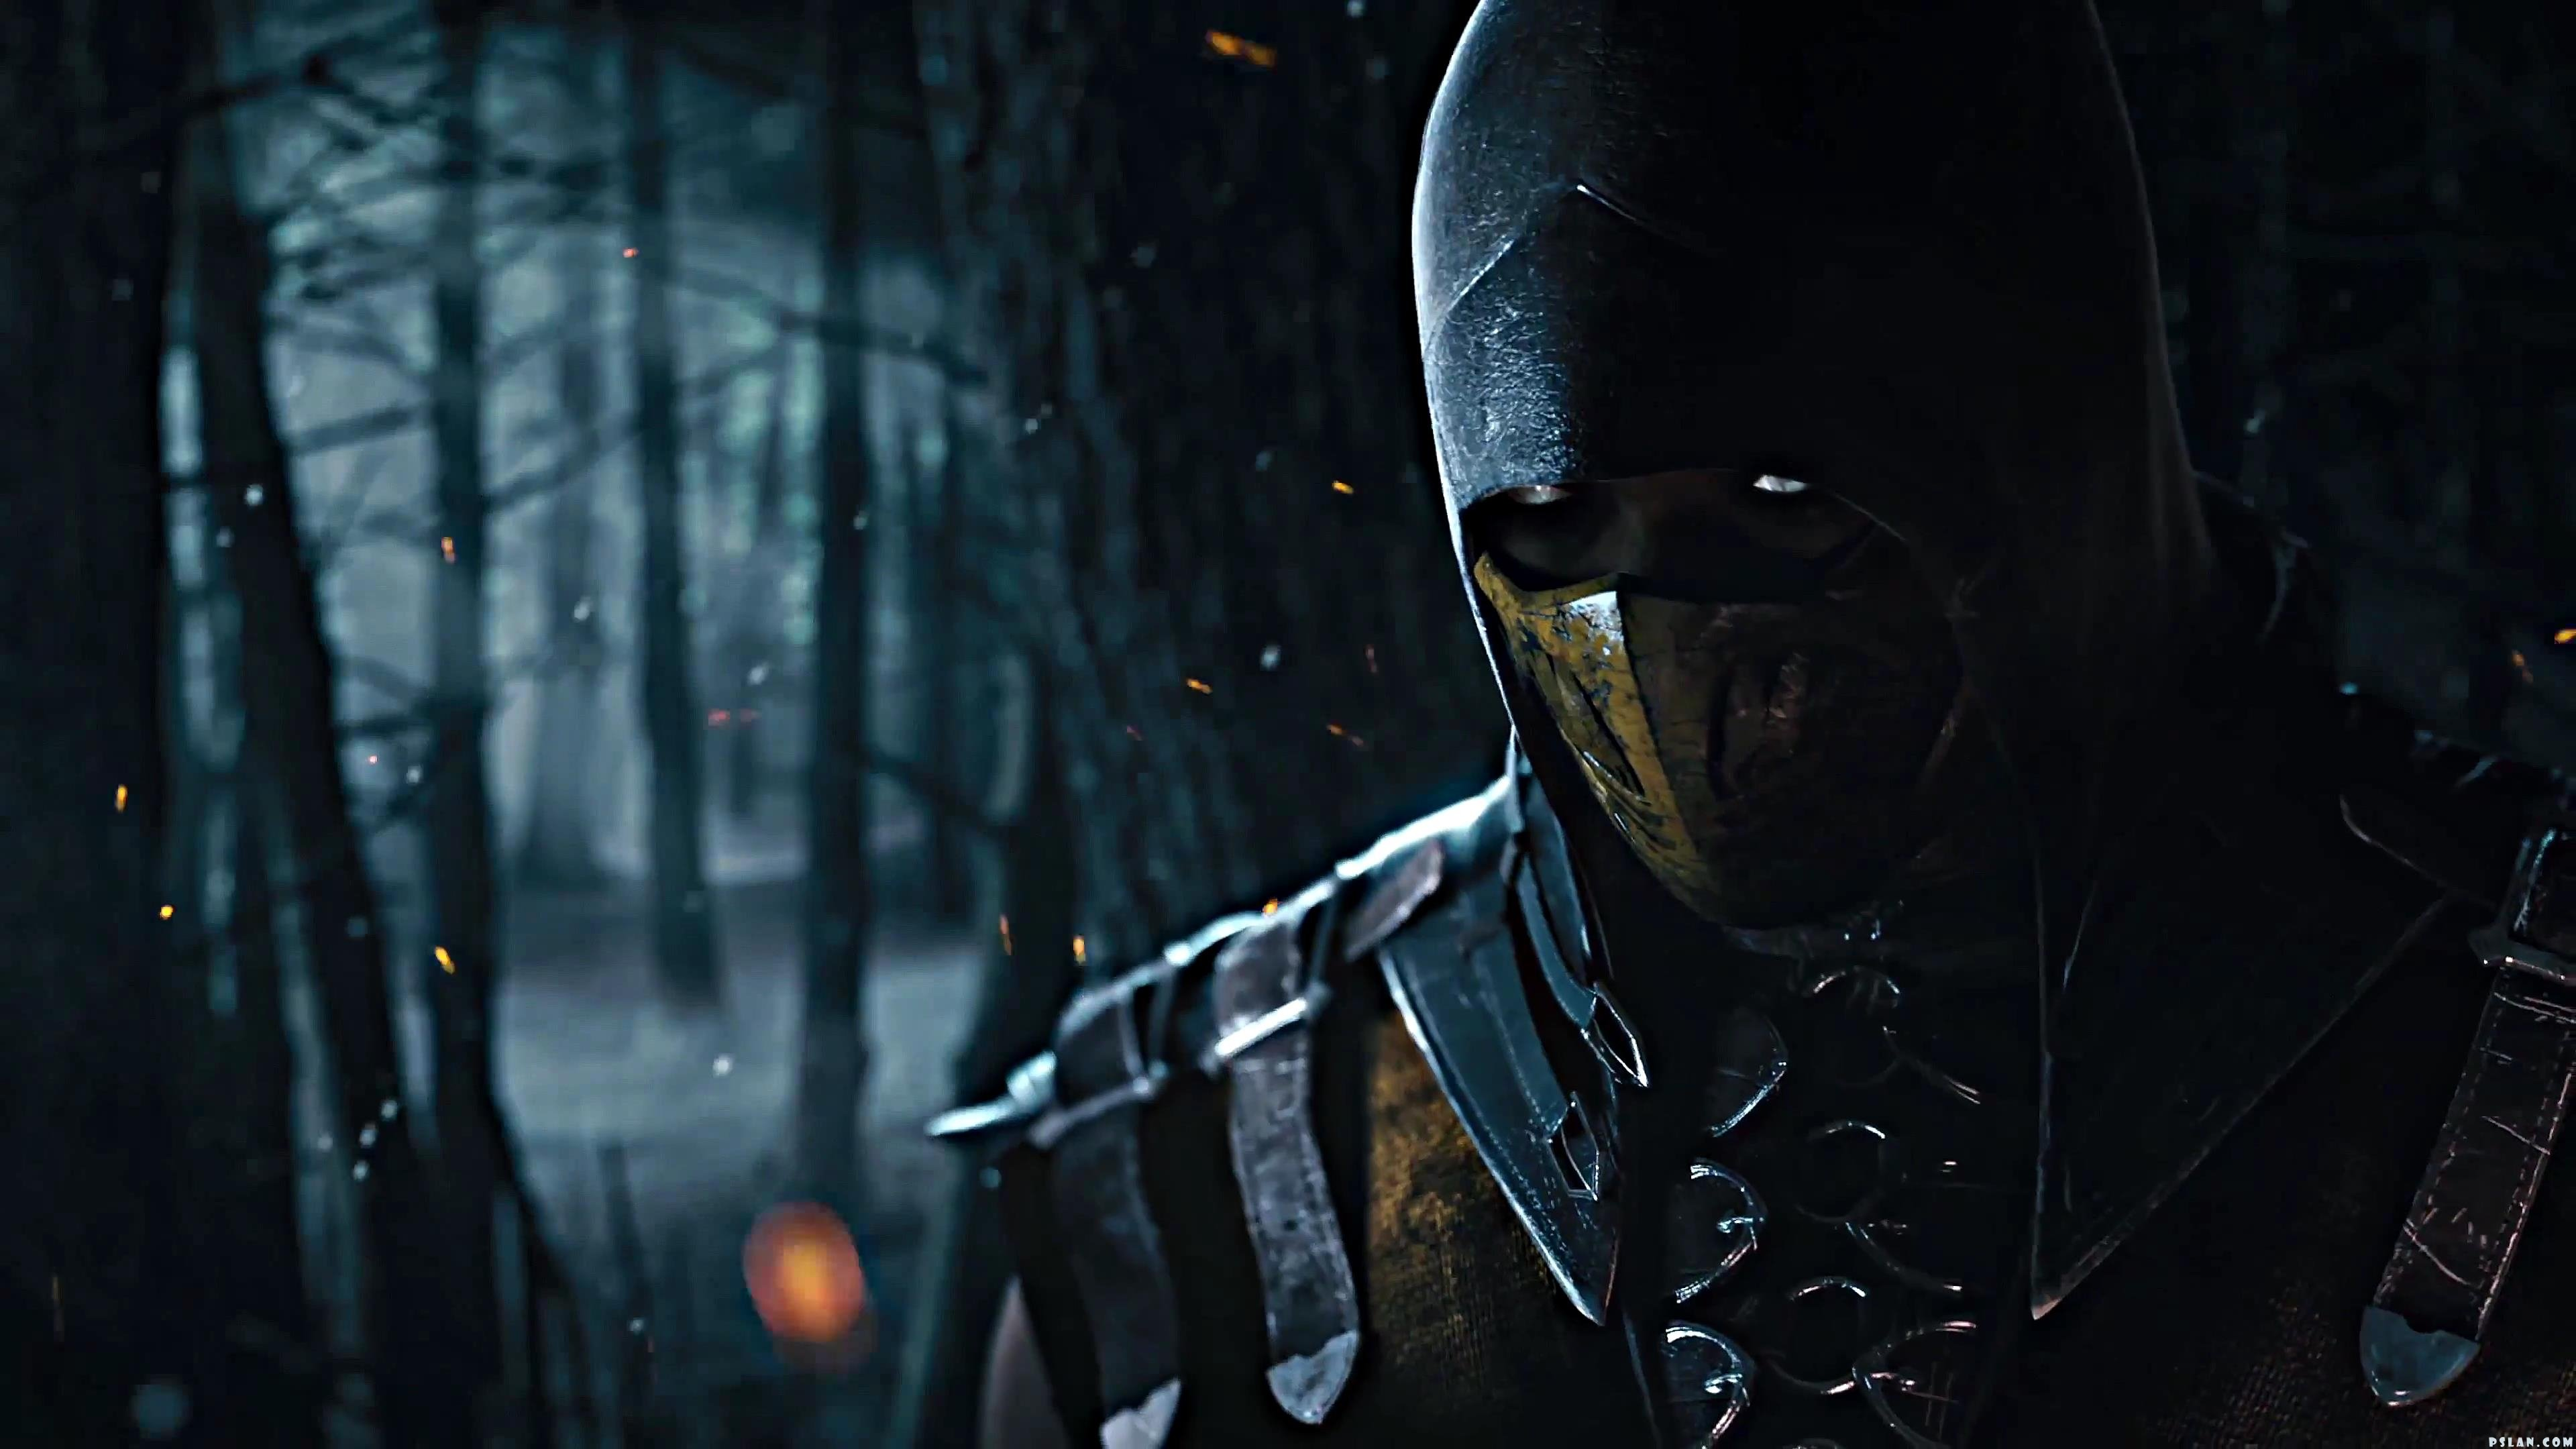 MORTAL KOMBAT X fighting fantasy warrior action 16 JPG wallpaper 3840x2160